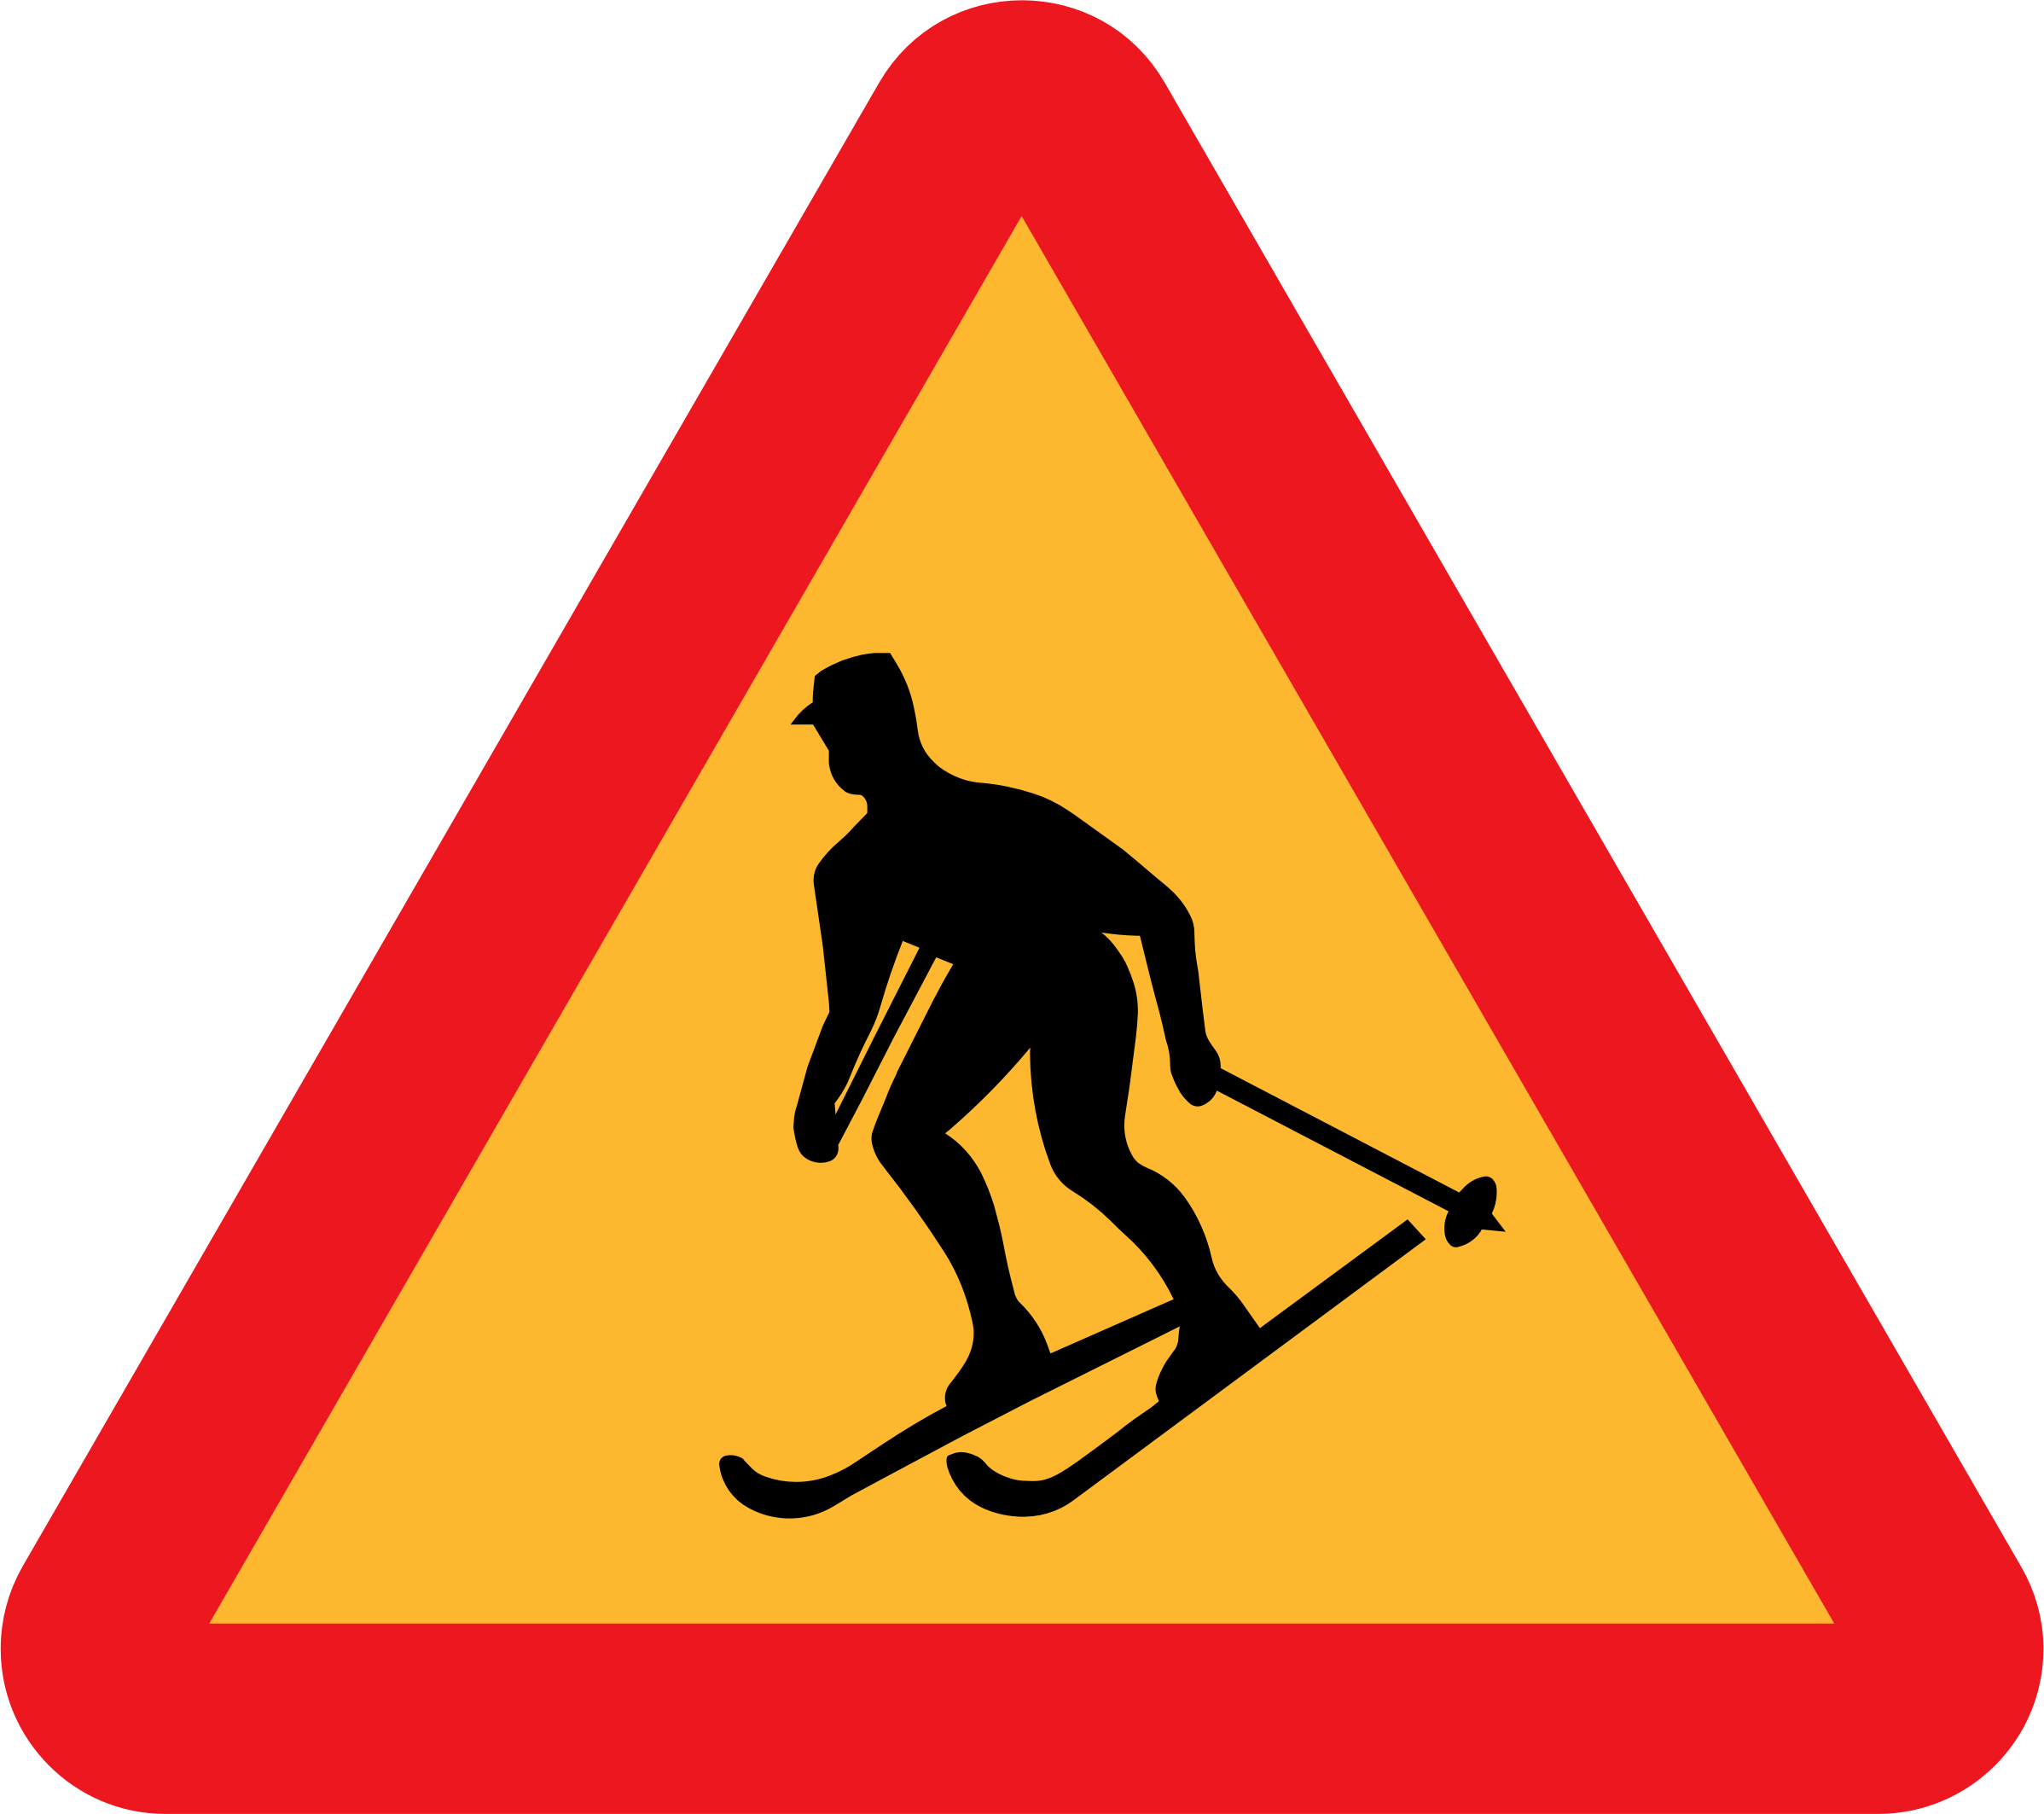 Skiier Sign by ryanlerch